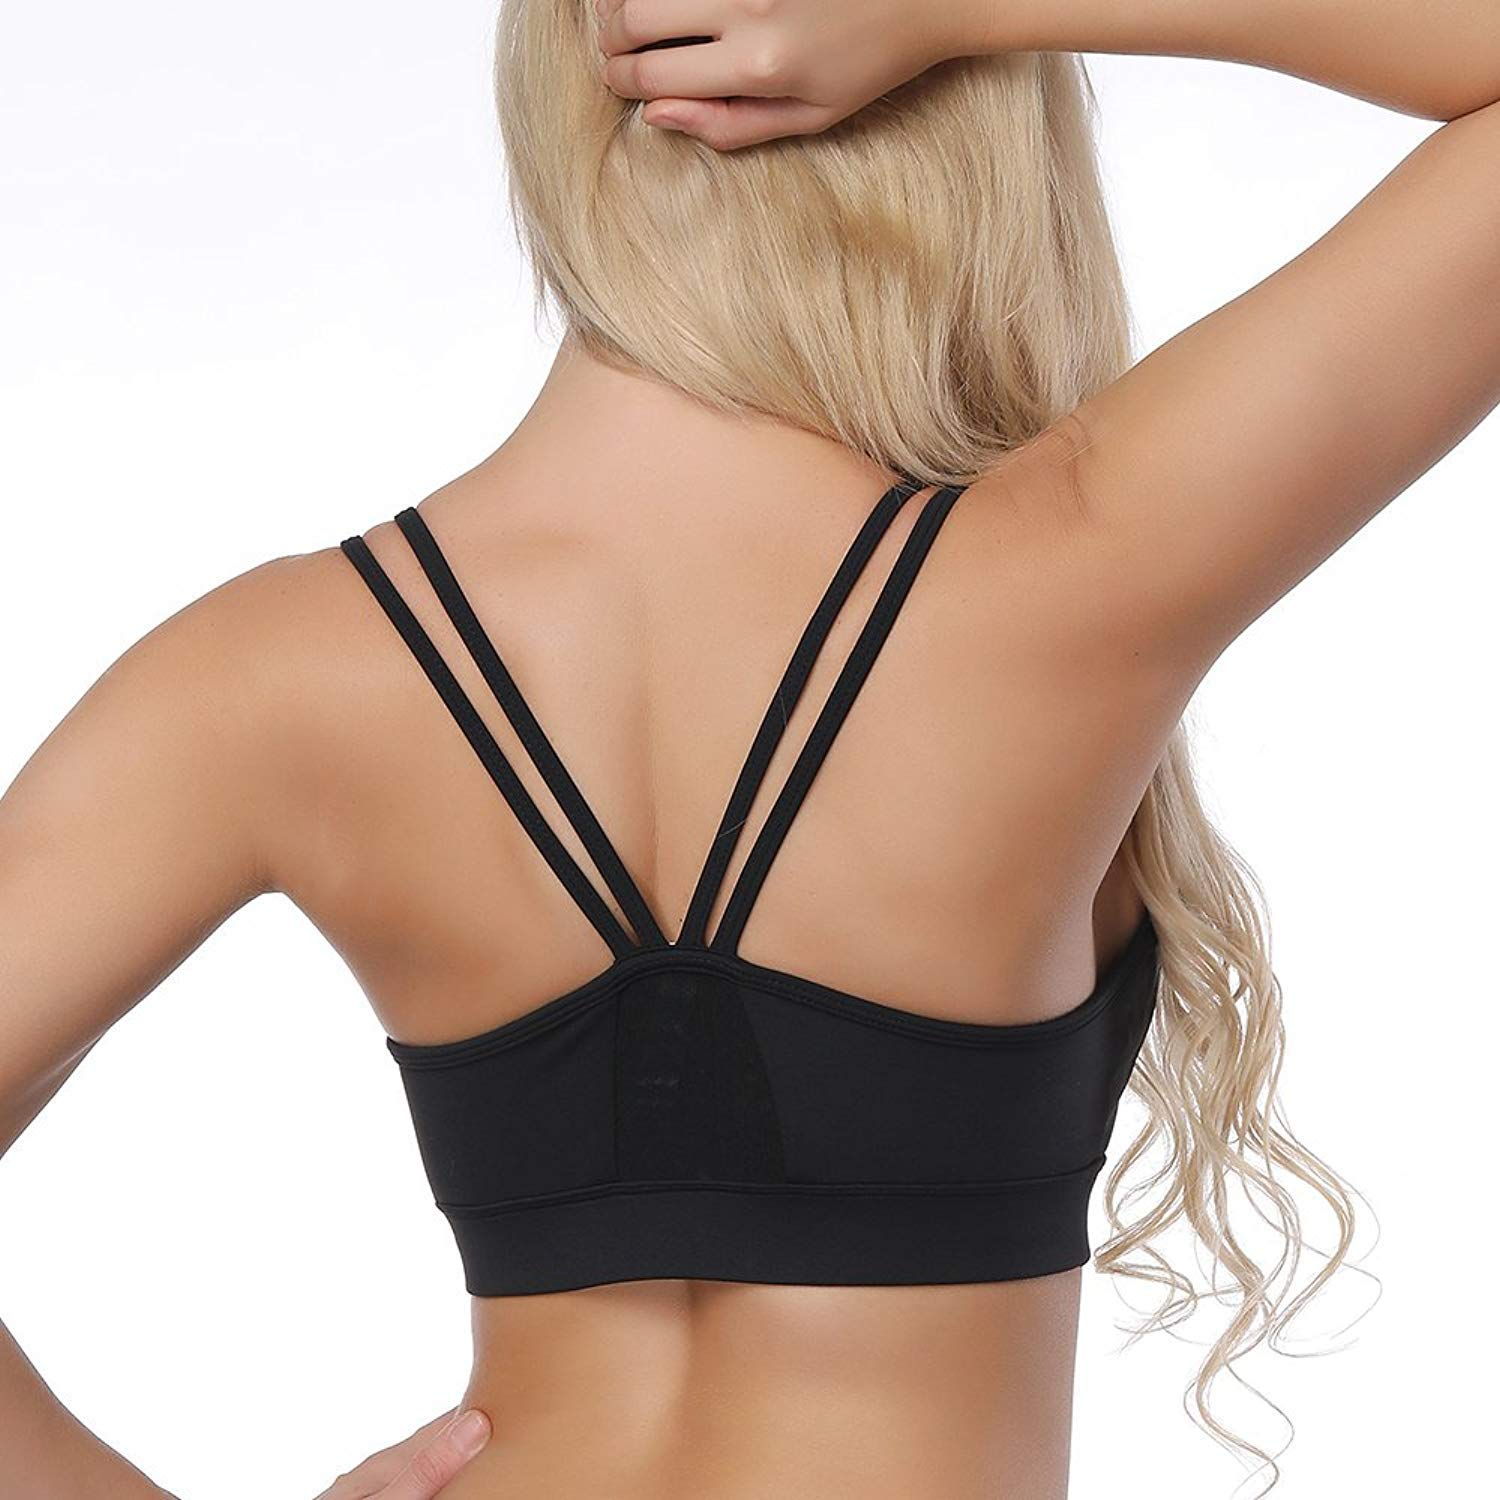 e007671557 ☆Please Measure Yoga Bras Size Fit Your Size Before Order And Refer To Uur  Size Chart On The Product Iimage. ☆Yadifen Running Sports Bras For Womens  ...